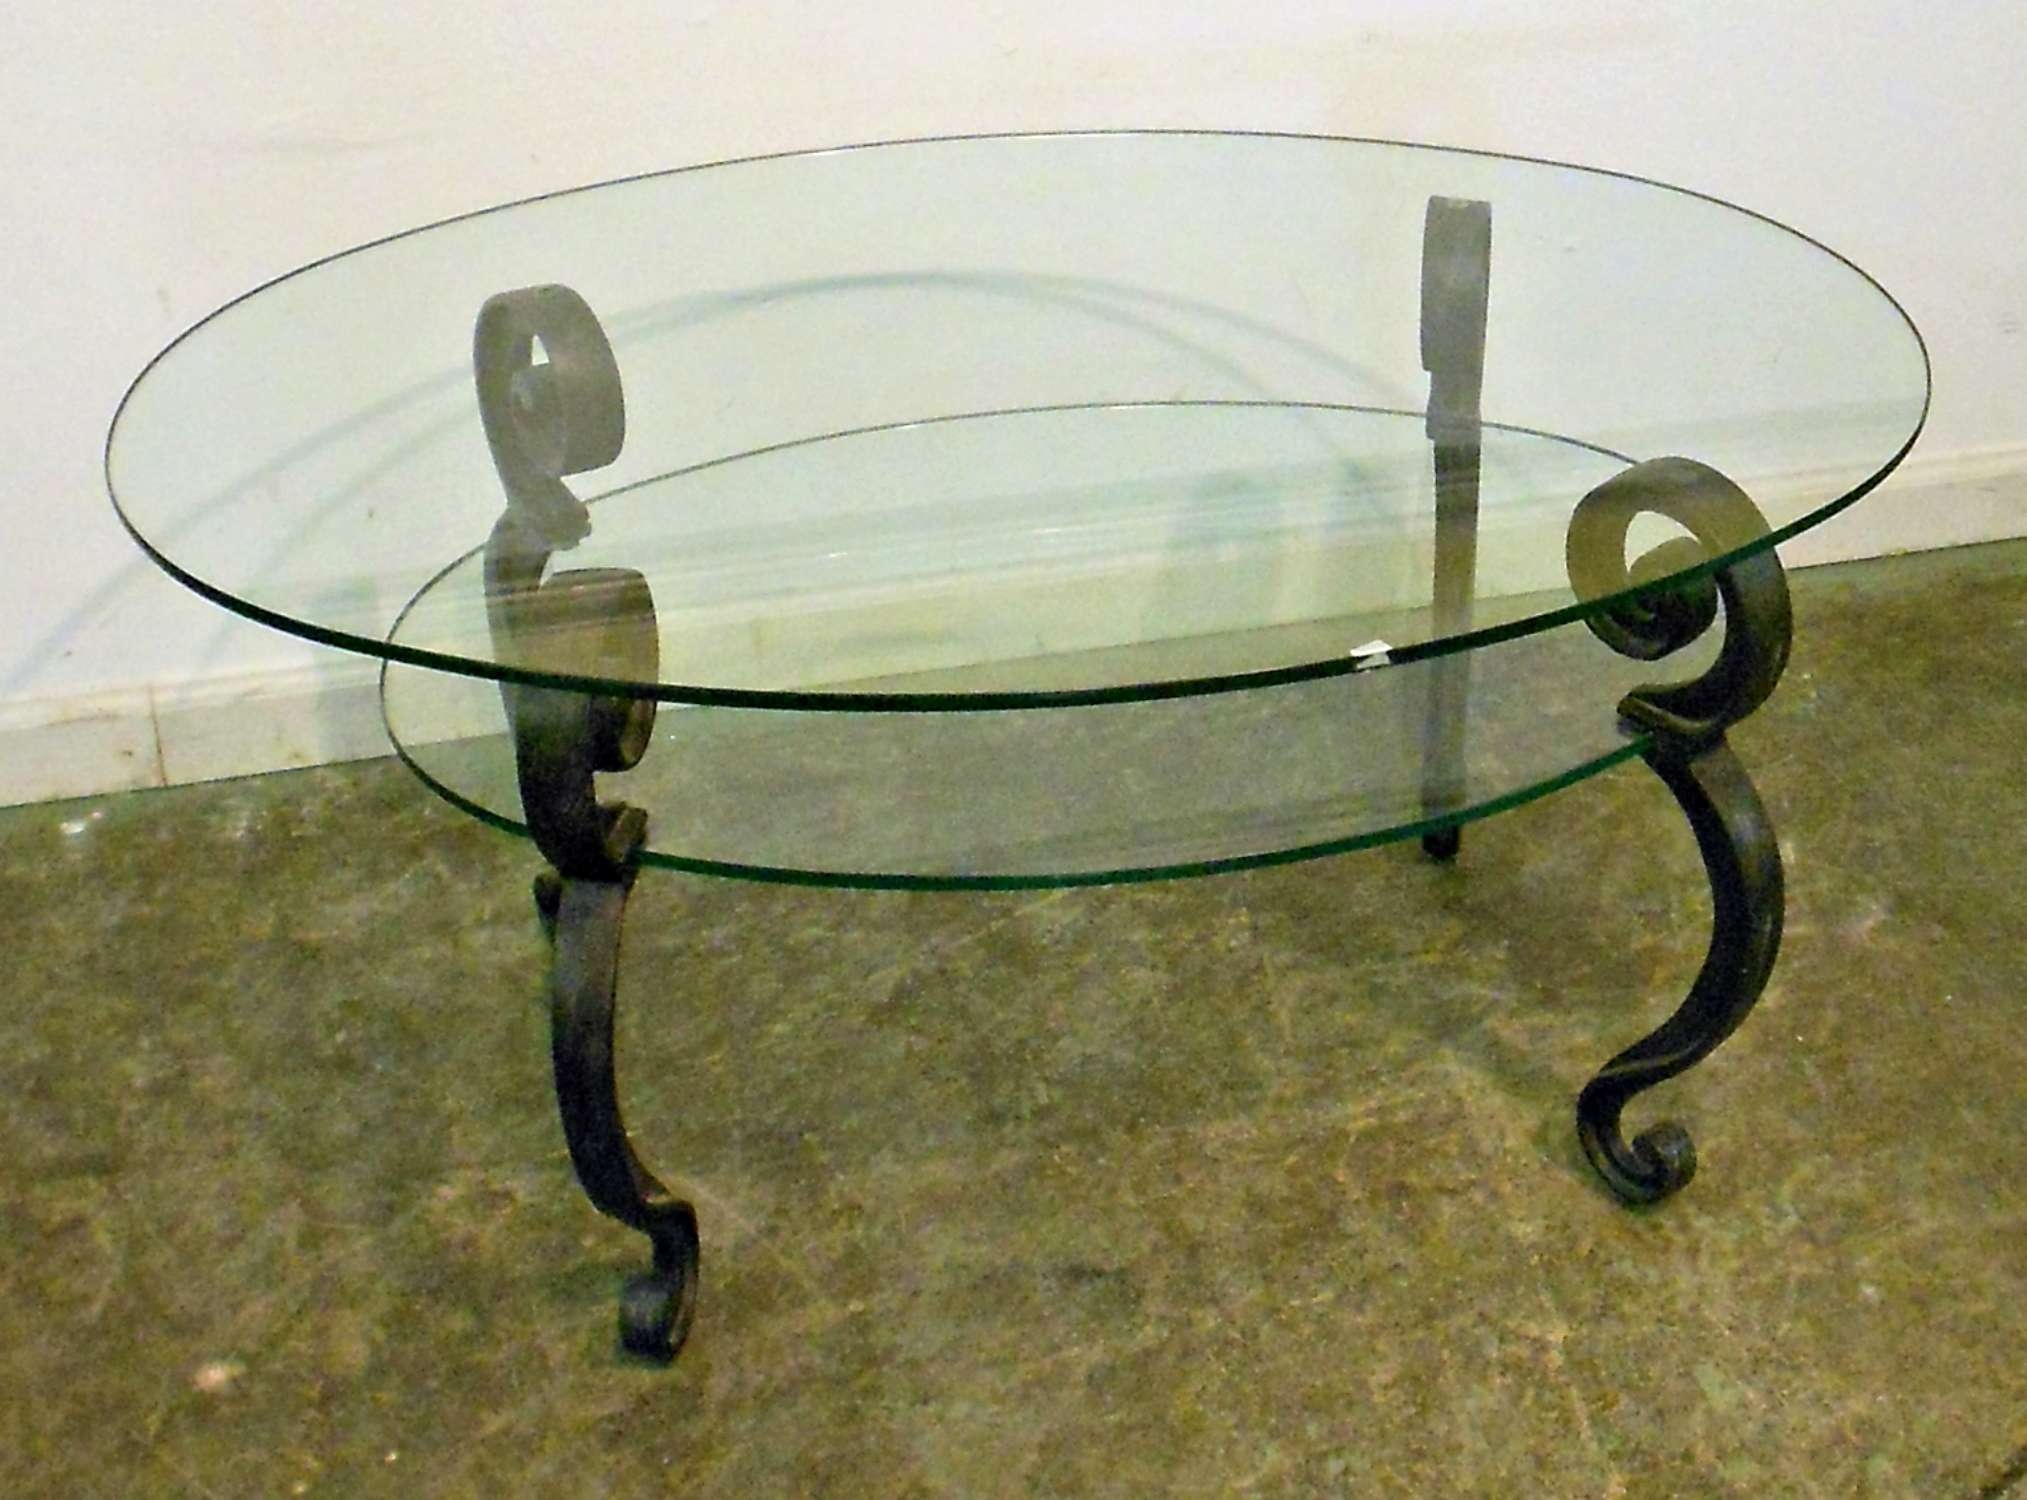 Popular Retro Glass Coffee Tables Intended For Vintage Glass Top Coffee Table With Black Metal Legs And Shelves (View 18 of 20)